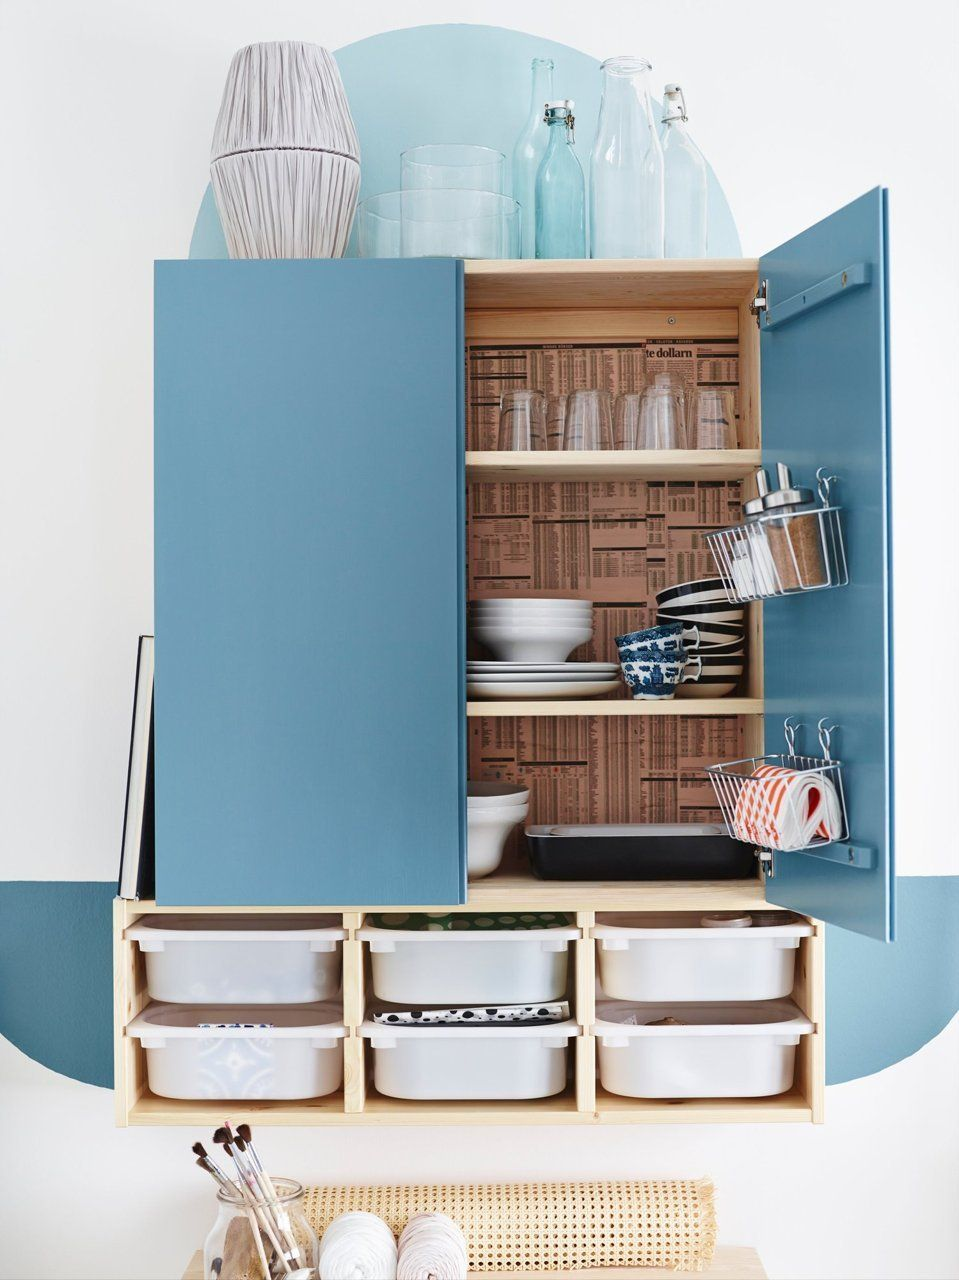 10 Kitchen Ideas We Picked Up from IKEA\'s New 2015 Catalog ...